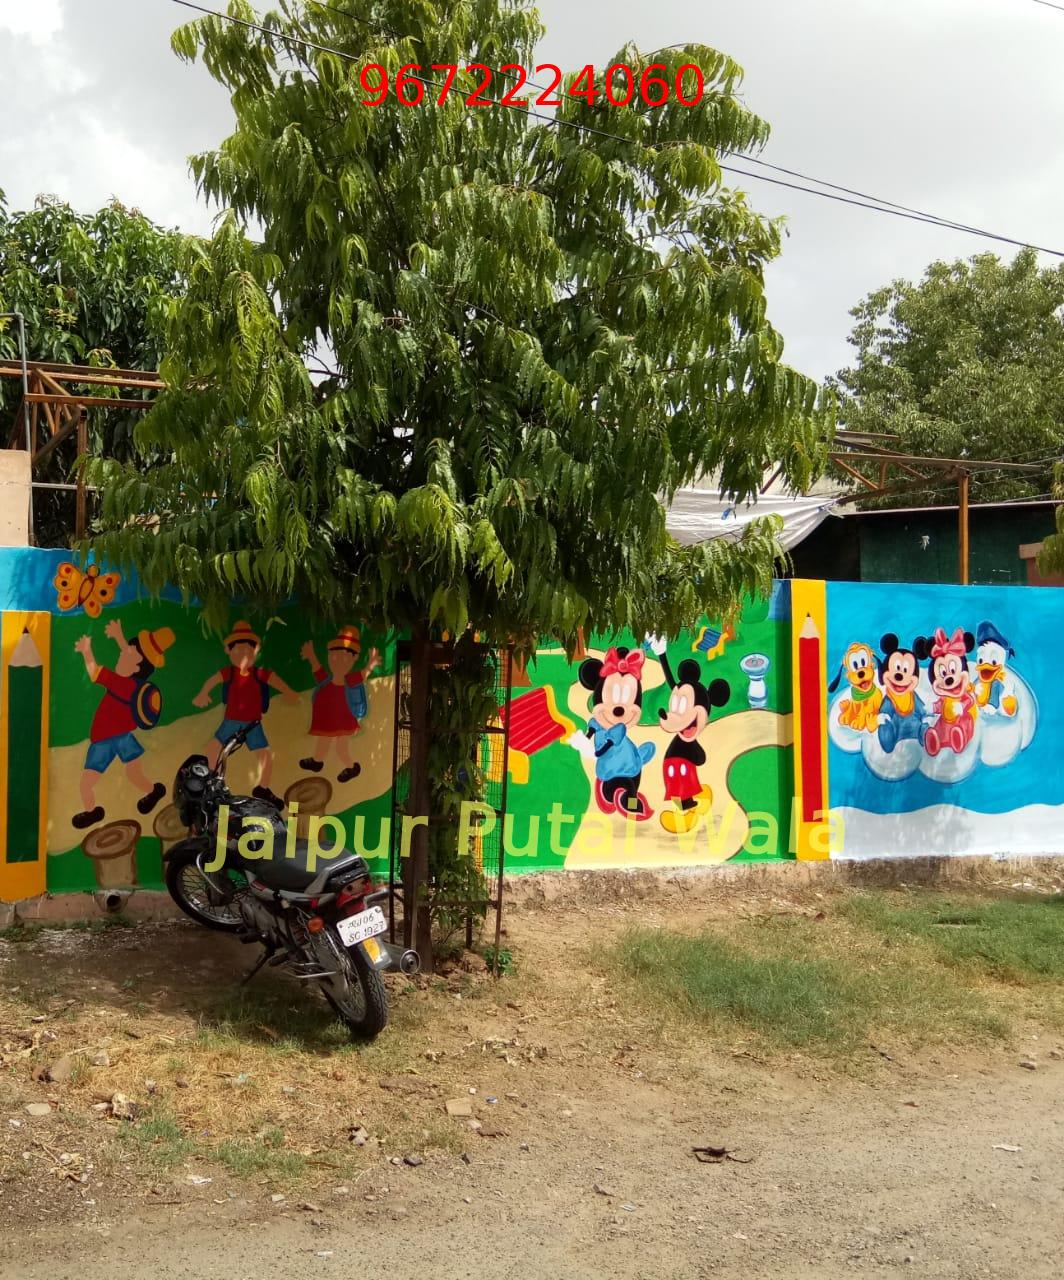 micky-mouse-cartoon-wall-paint-rajasthan-05.jpg